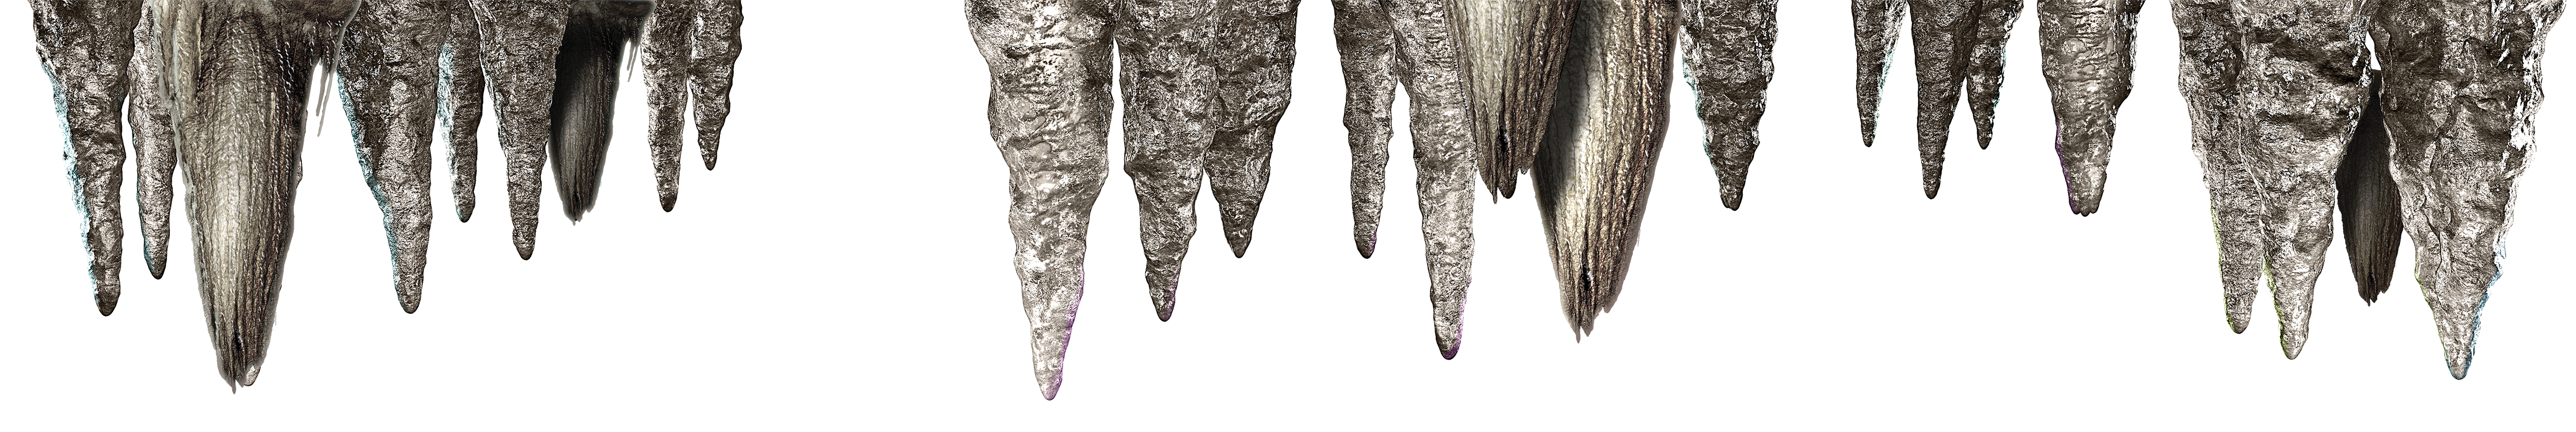 Stalactite clipart - Clipground